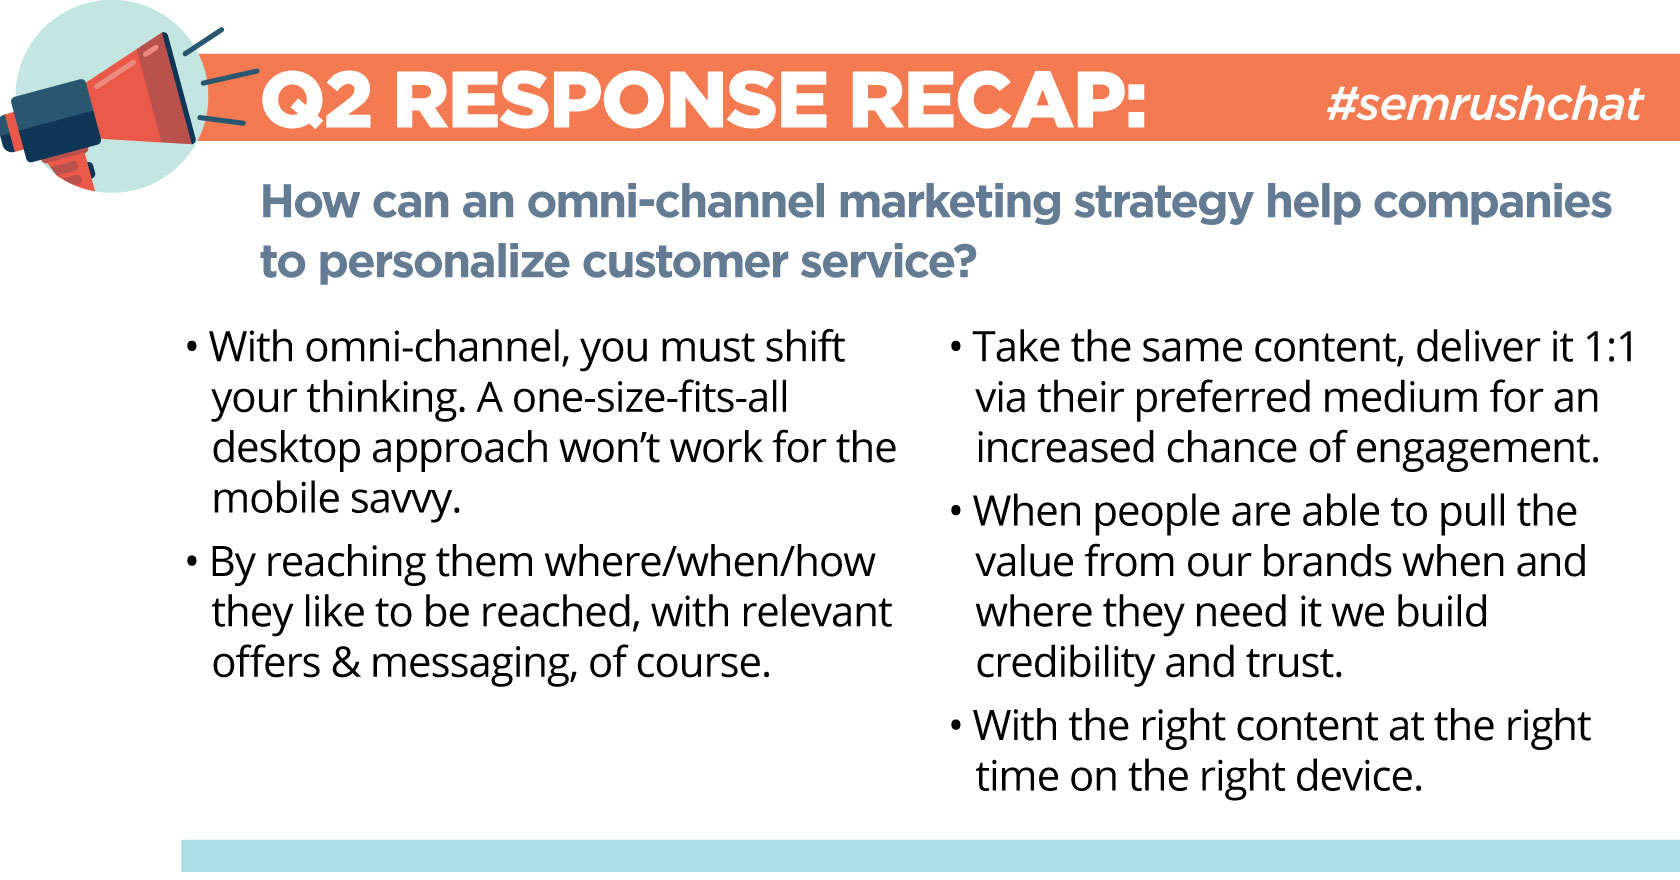 Everything You Need to Know About Omni-Channel Marketing #semrushchat. Image 1